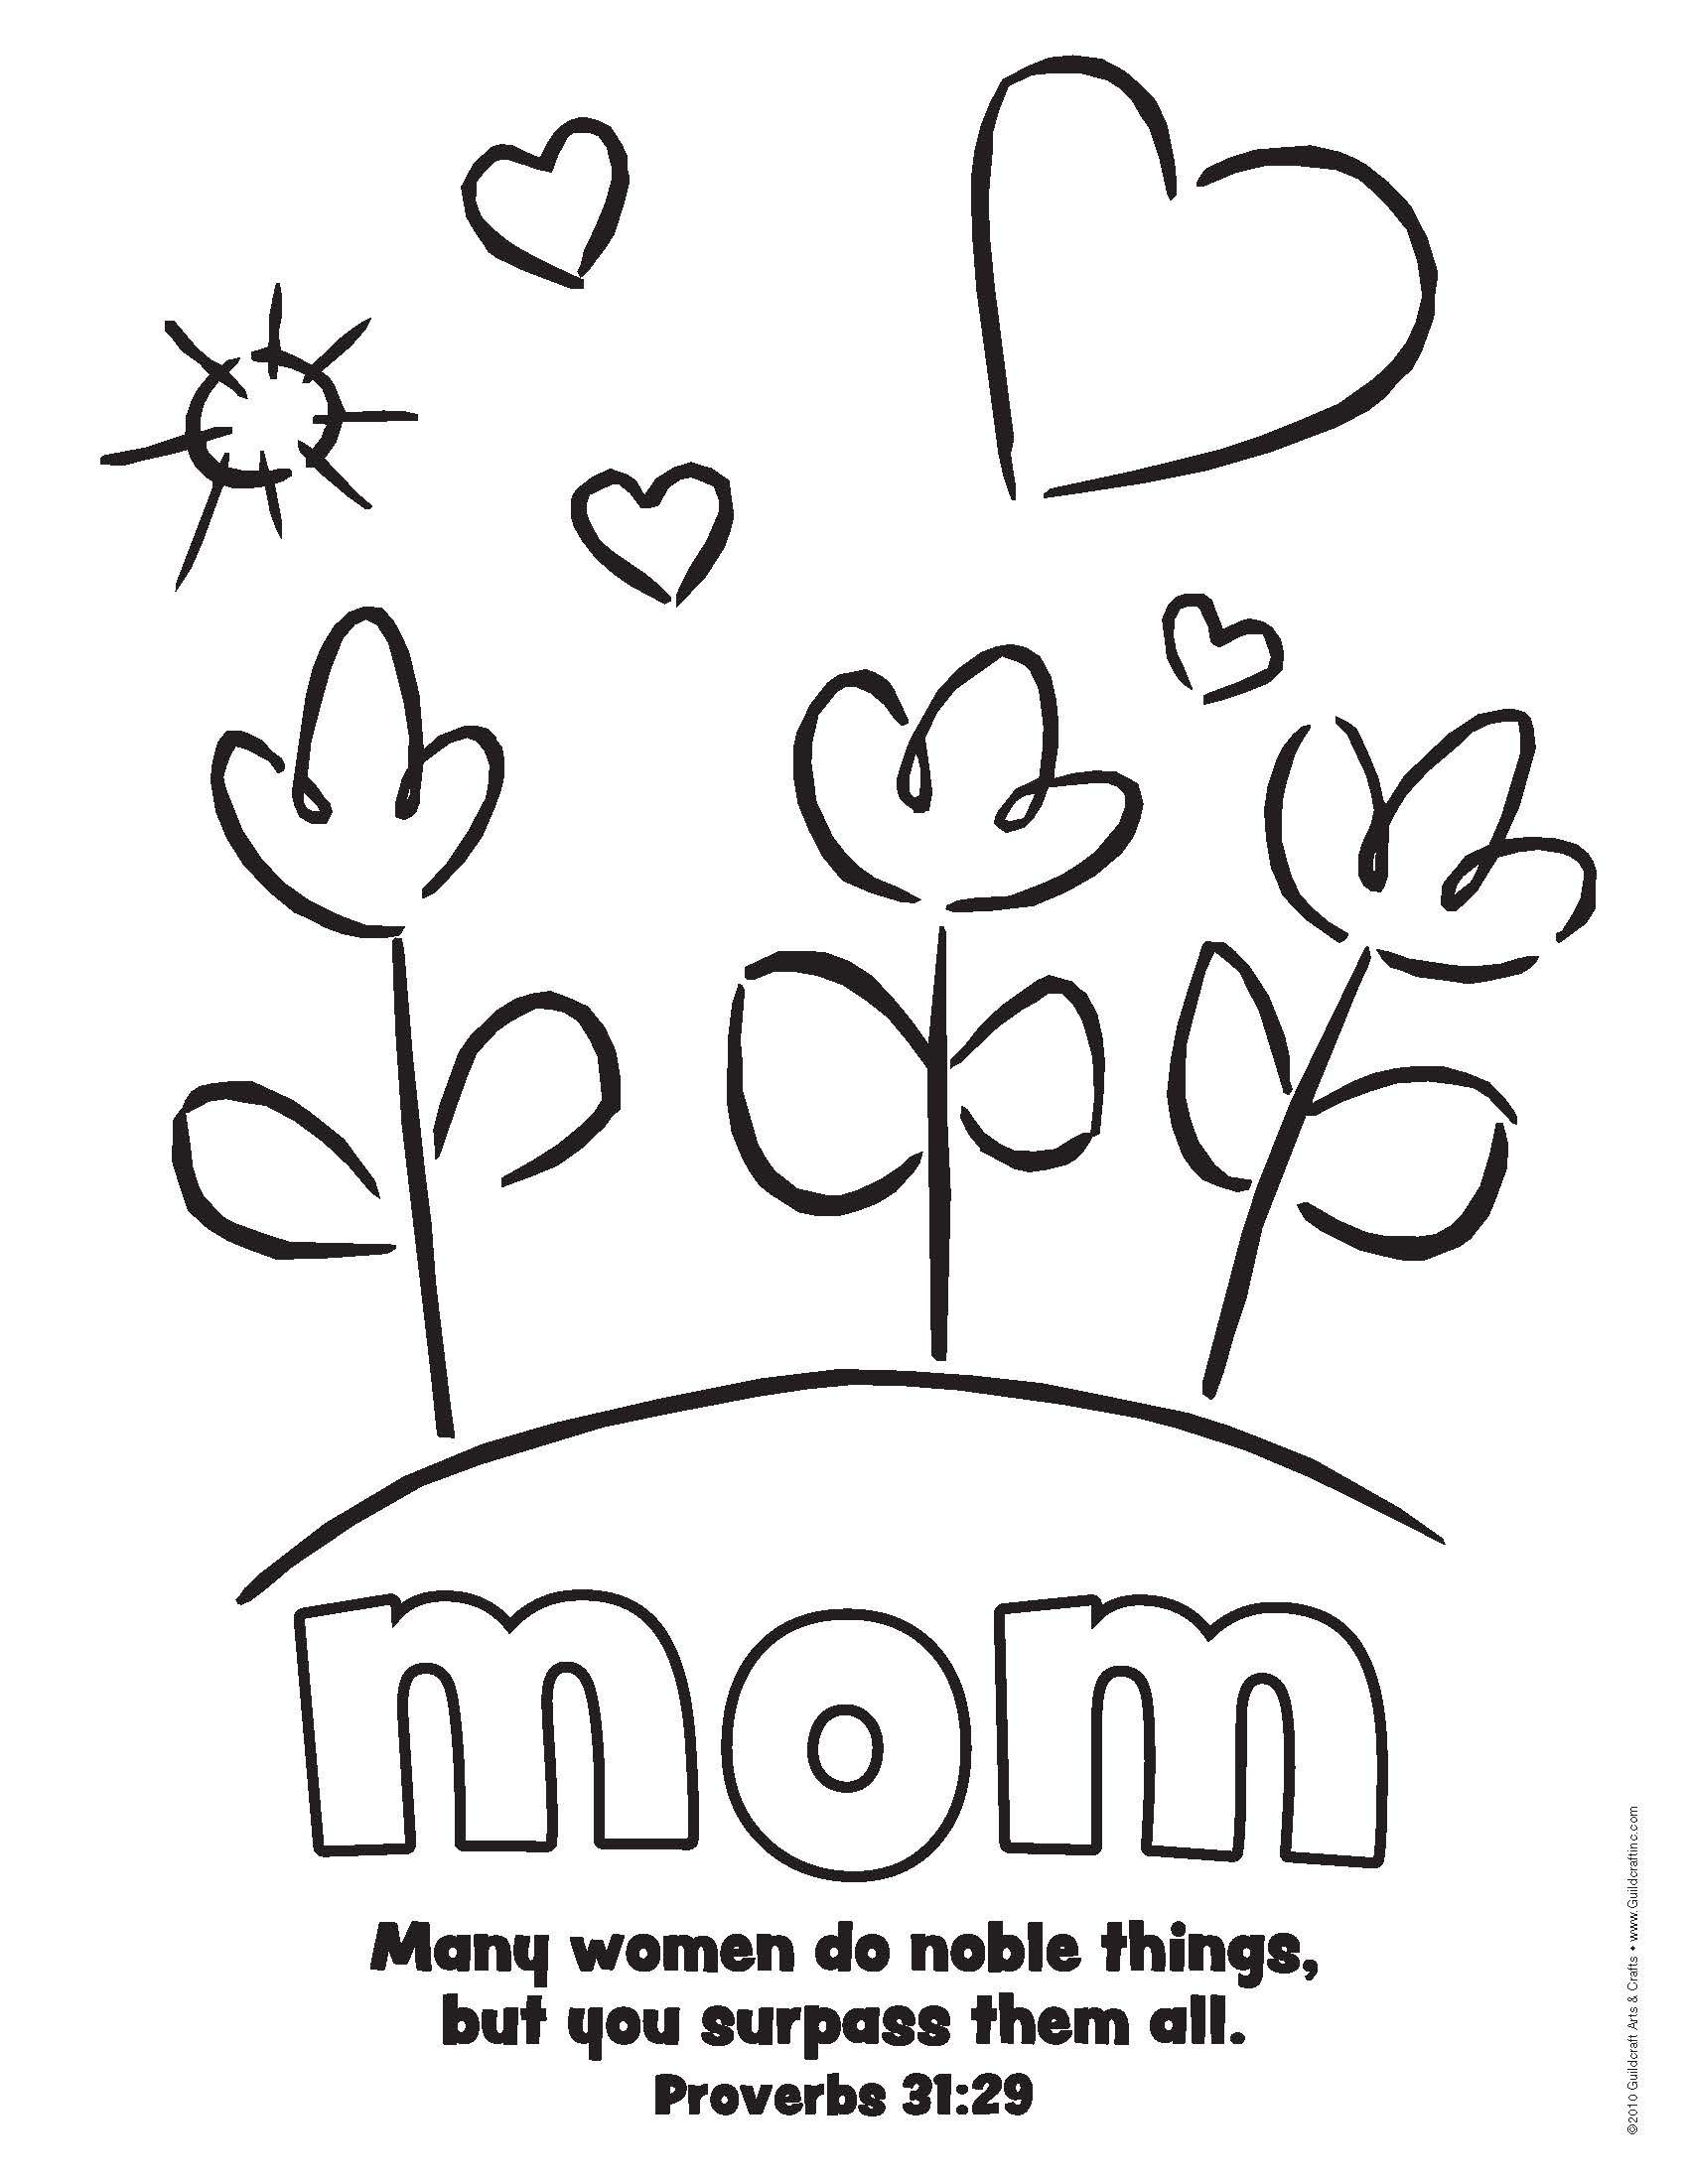 Childrens christian valentine coloring pages - Simple Mother S Day Printable With Prov 31 Bible Verse Www Guildcraftinc